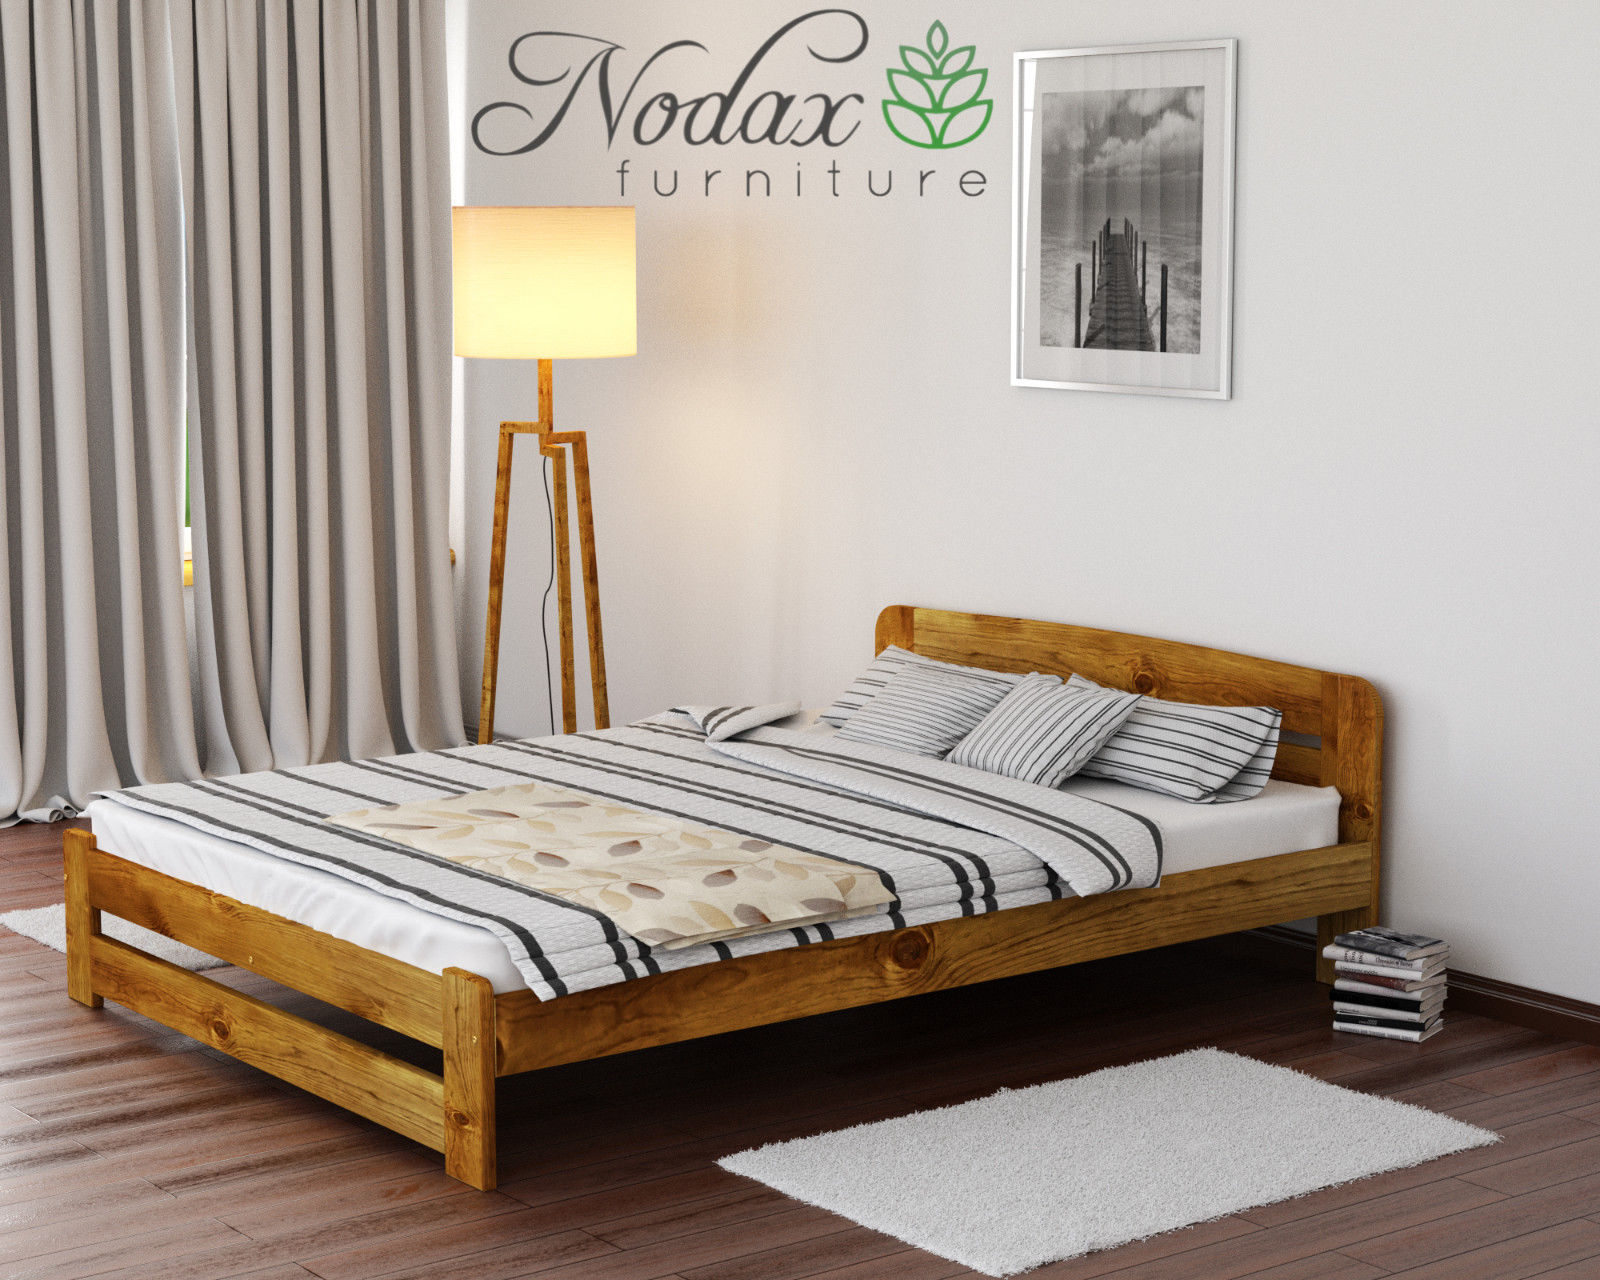 4ft Double Bed Size Small Double Bed Frame